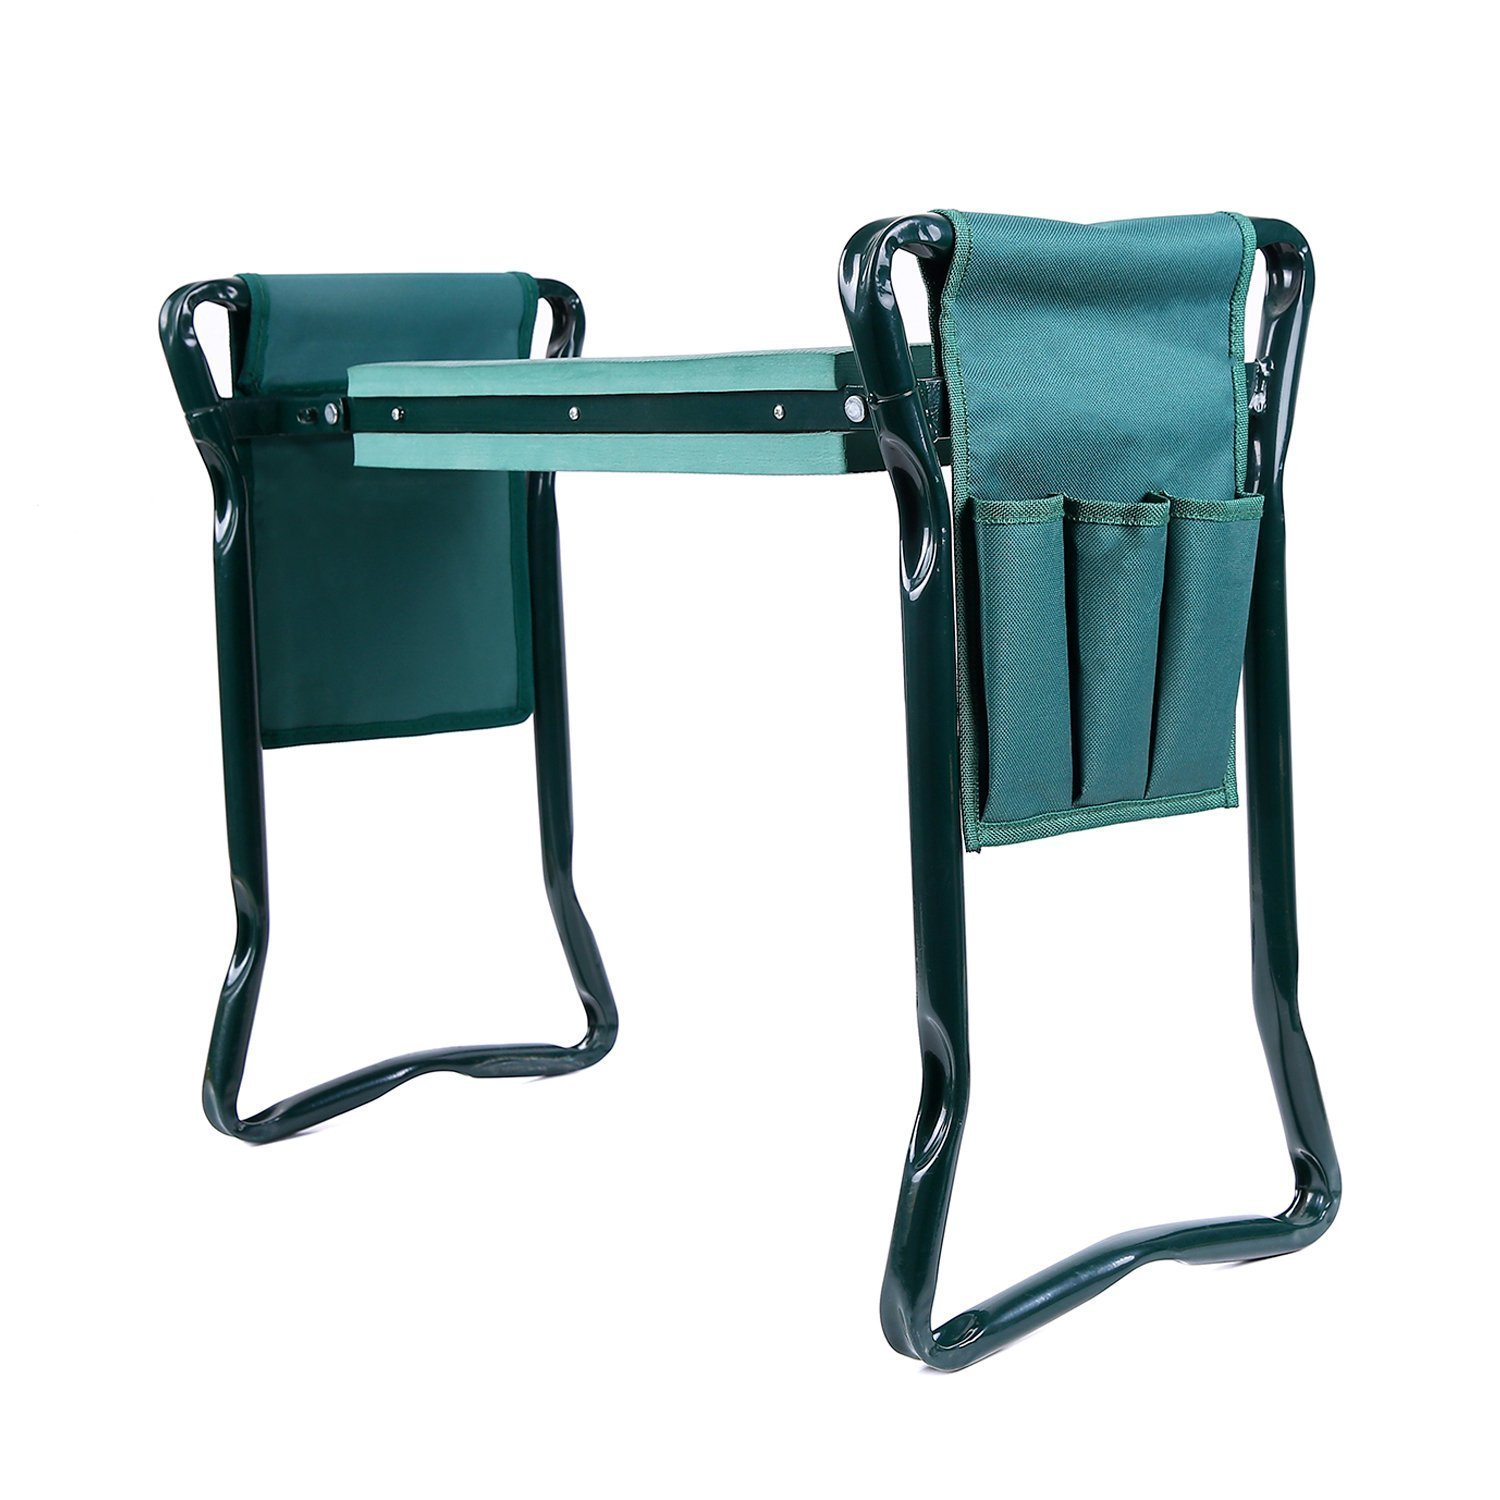 garden kneeler and seat, must-haves for gardening, garden gear